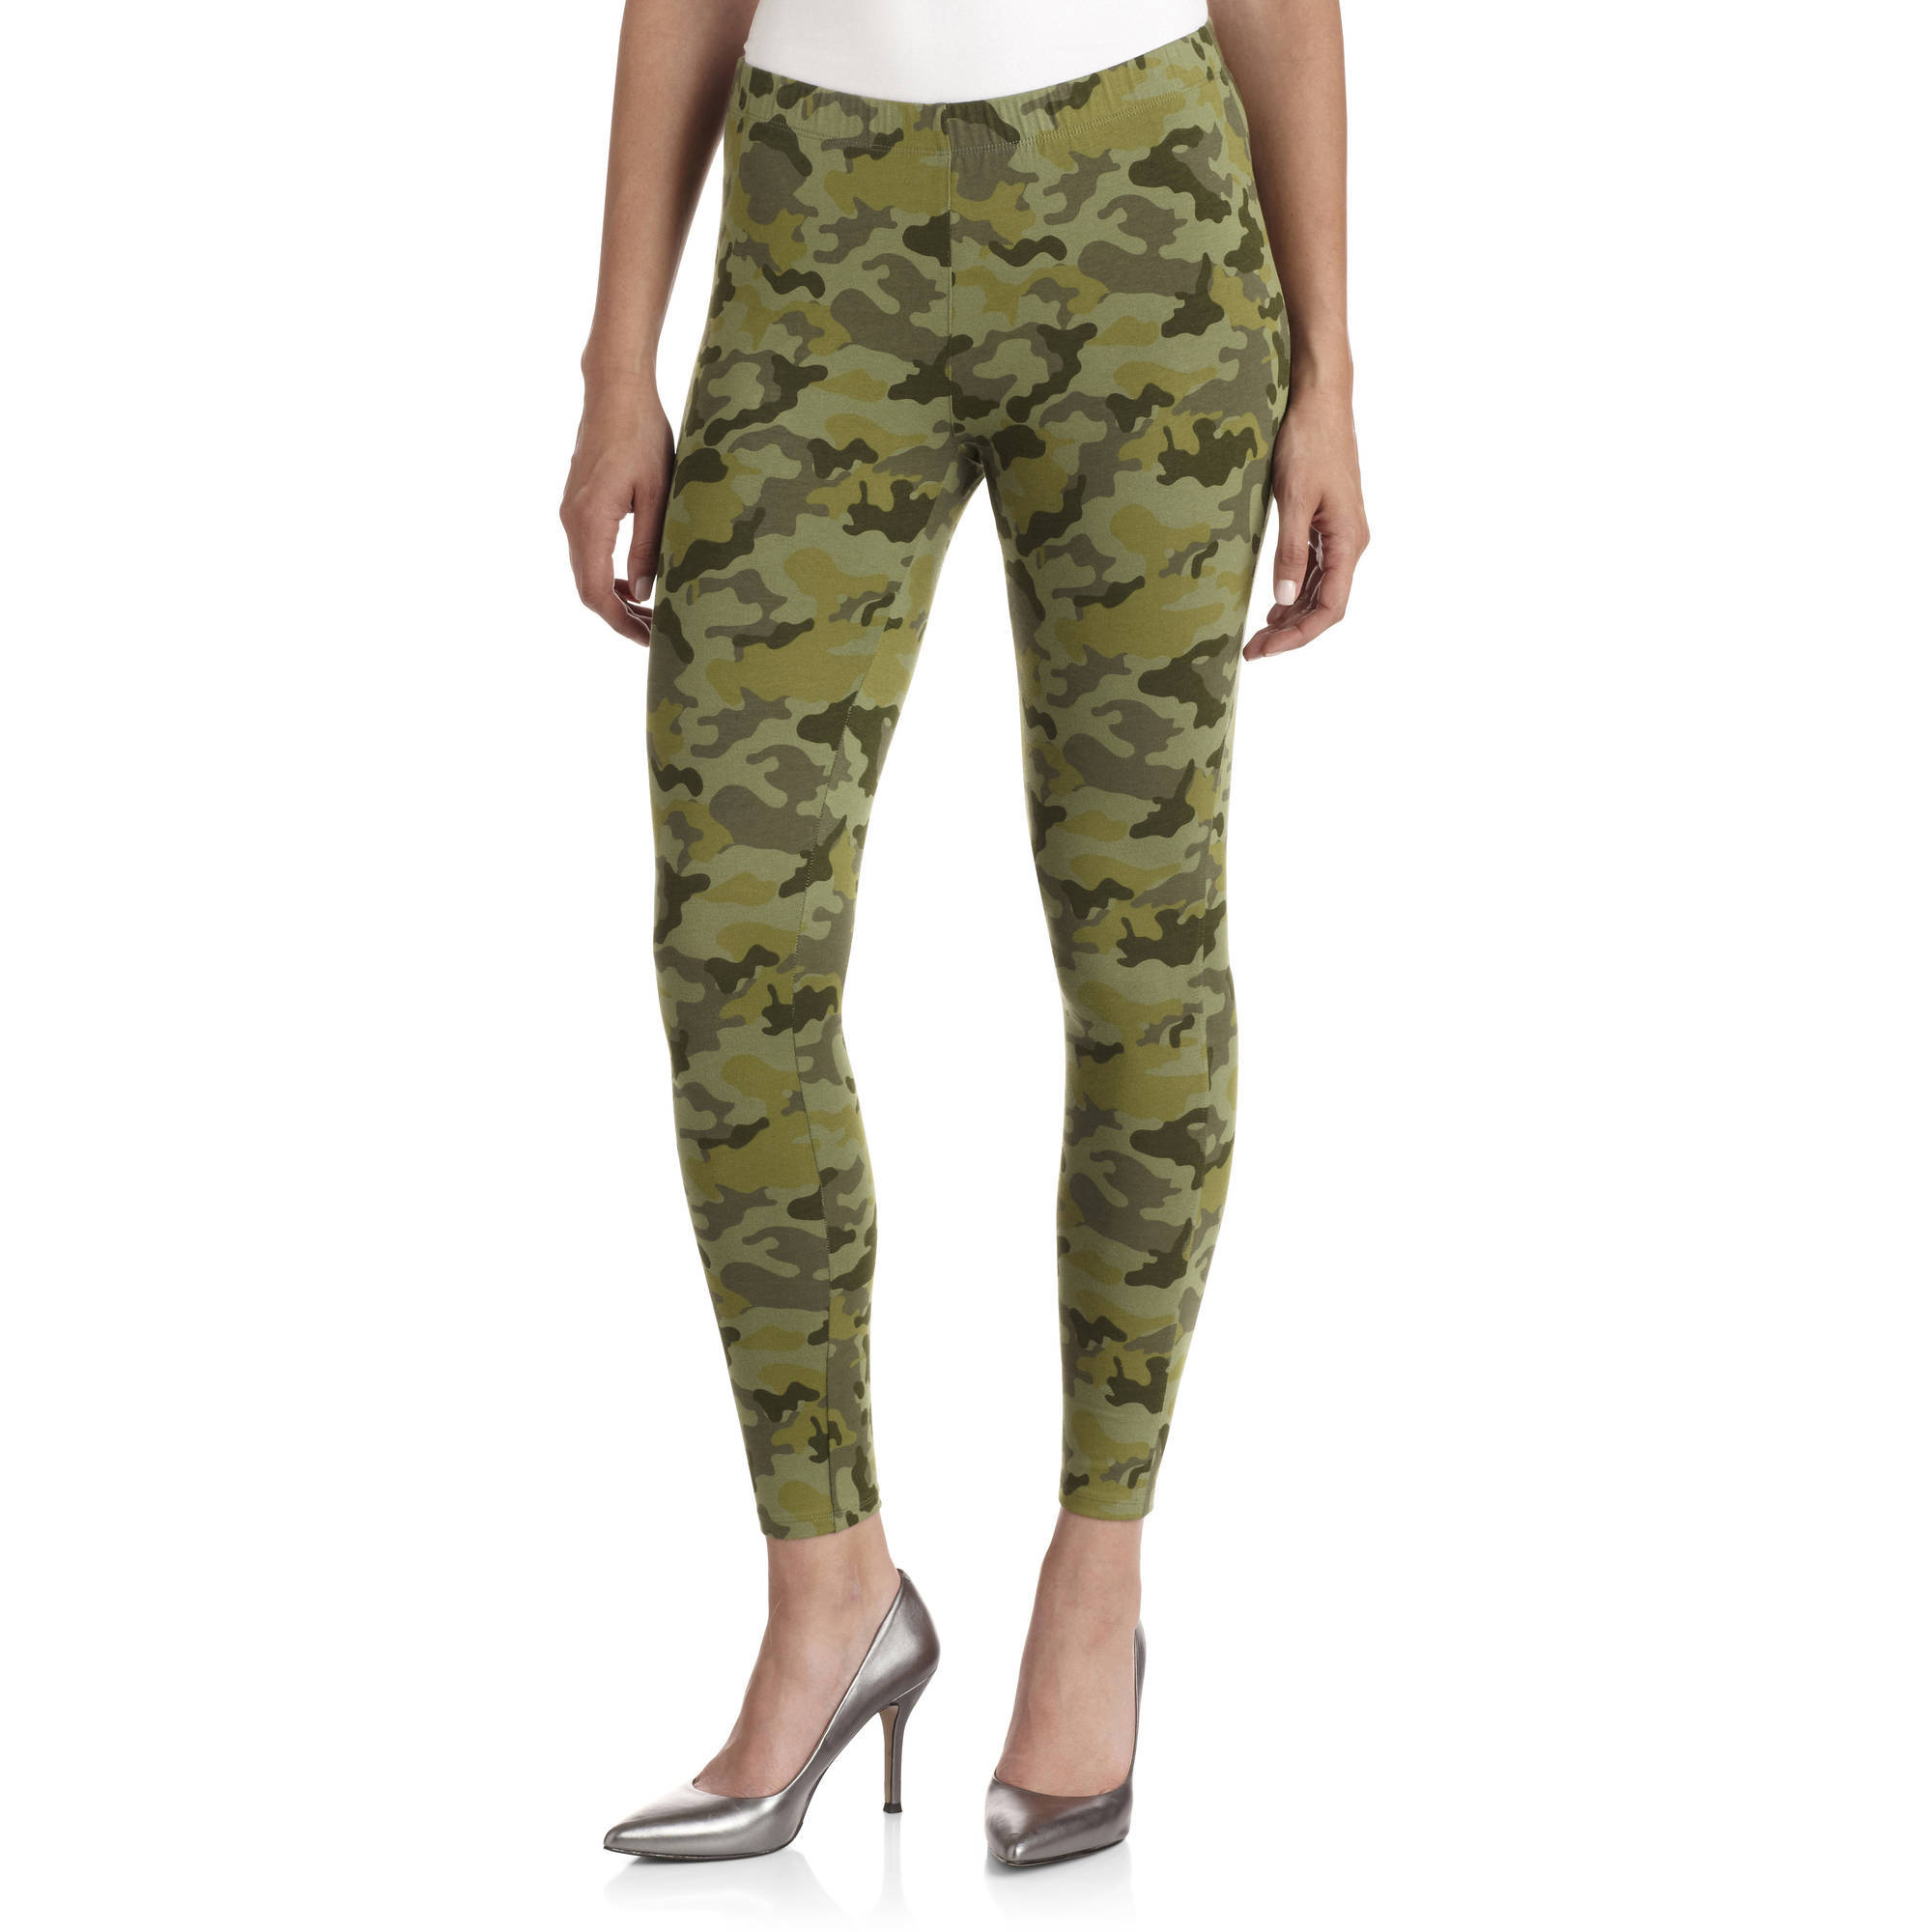 Faded Glory Women's Printed Legging